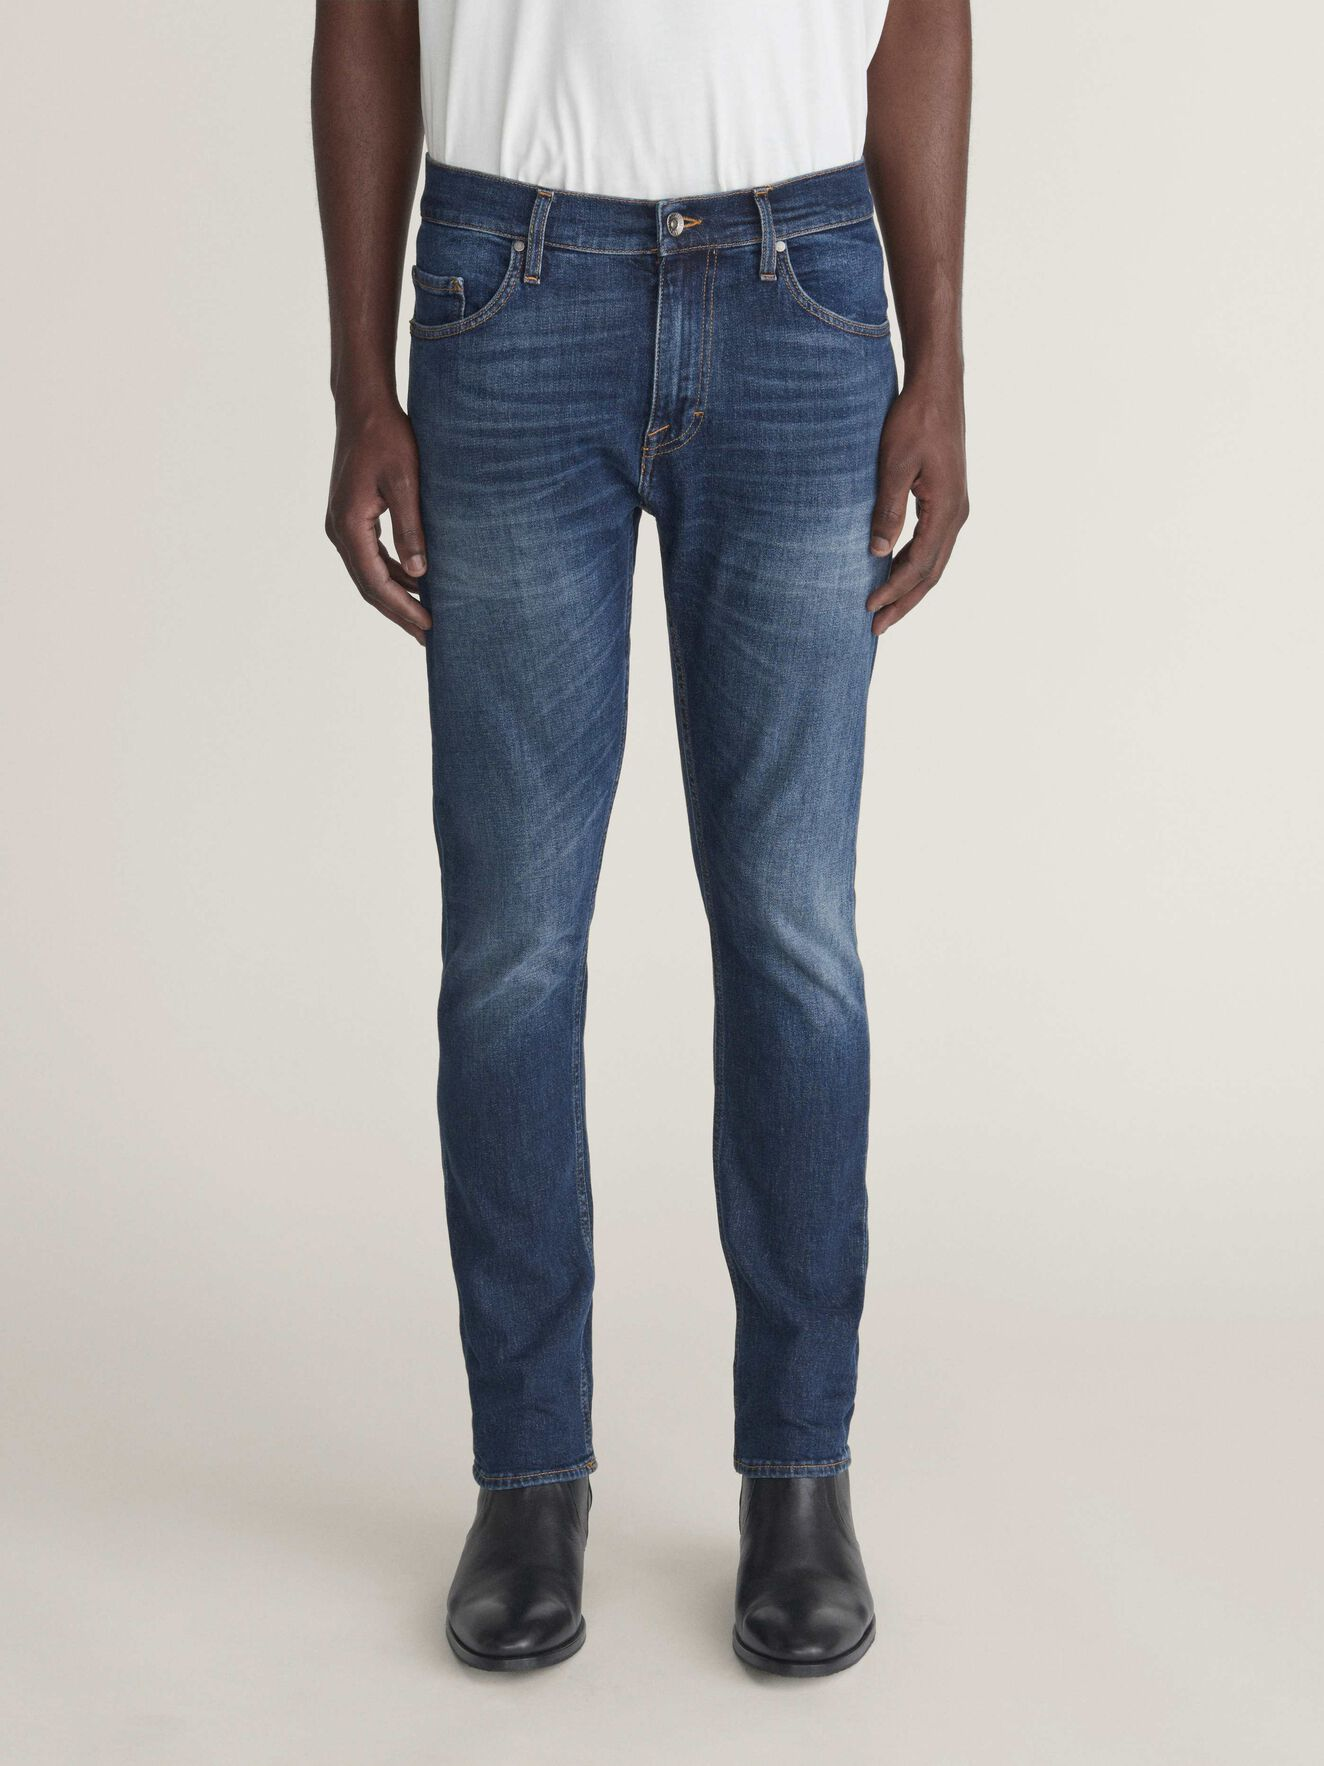 Pistolero Jeans in Indigo from Tiger of Sweden